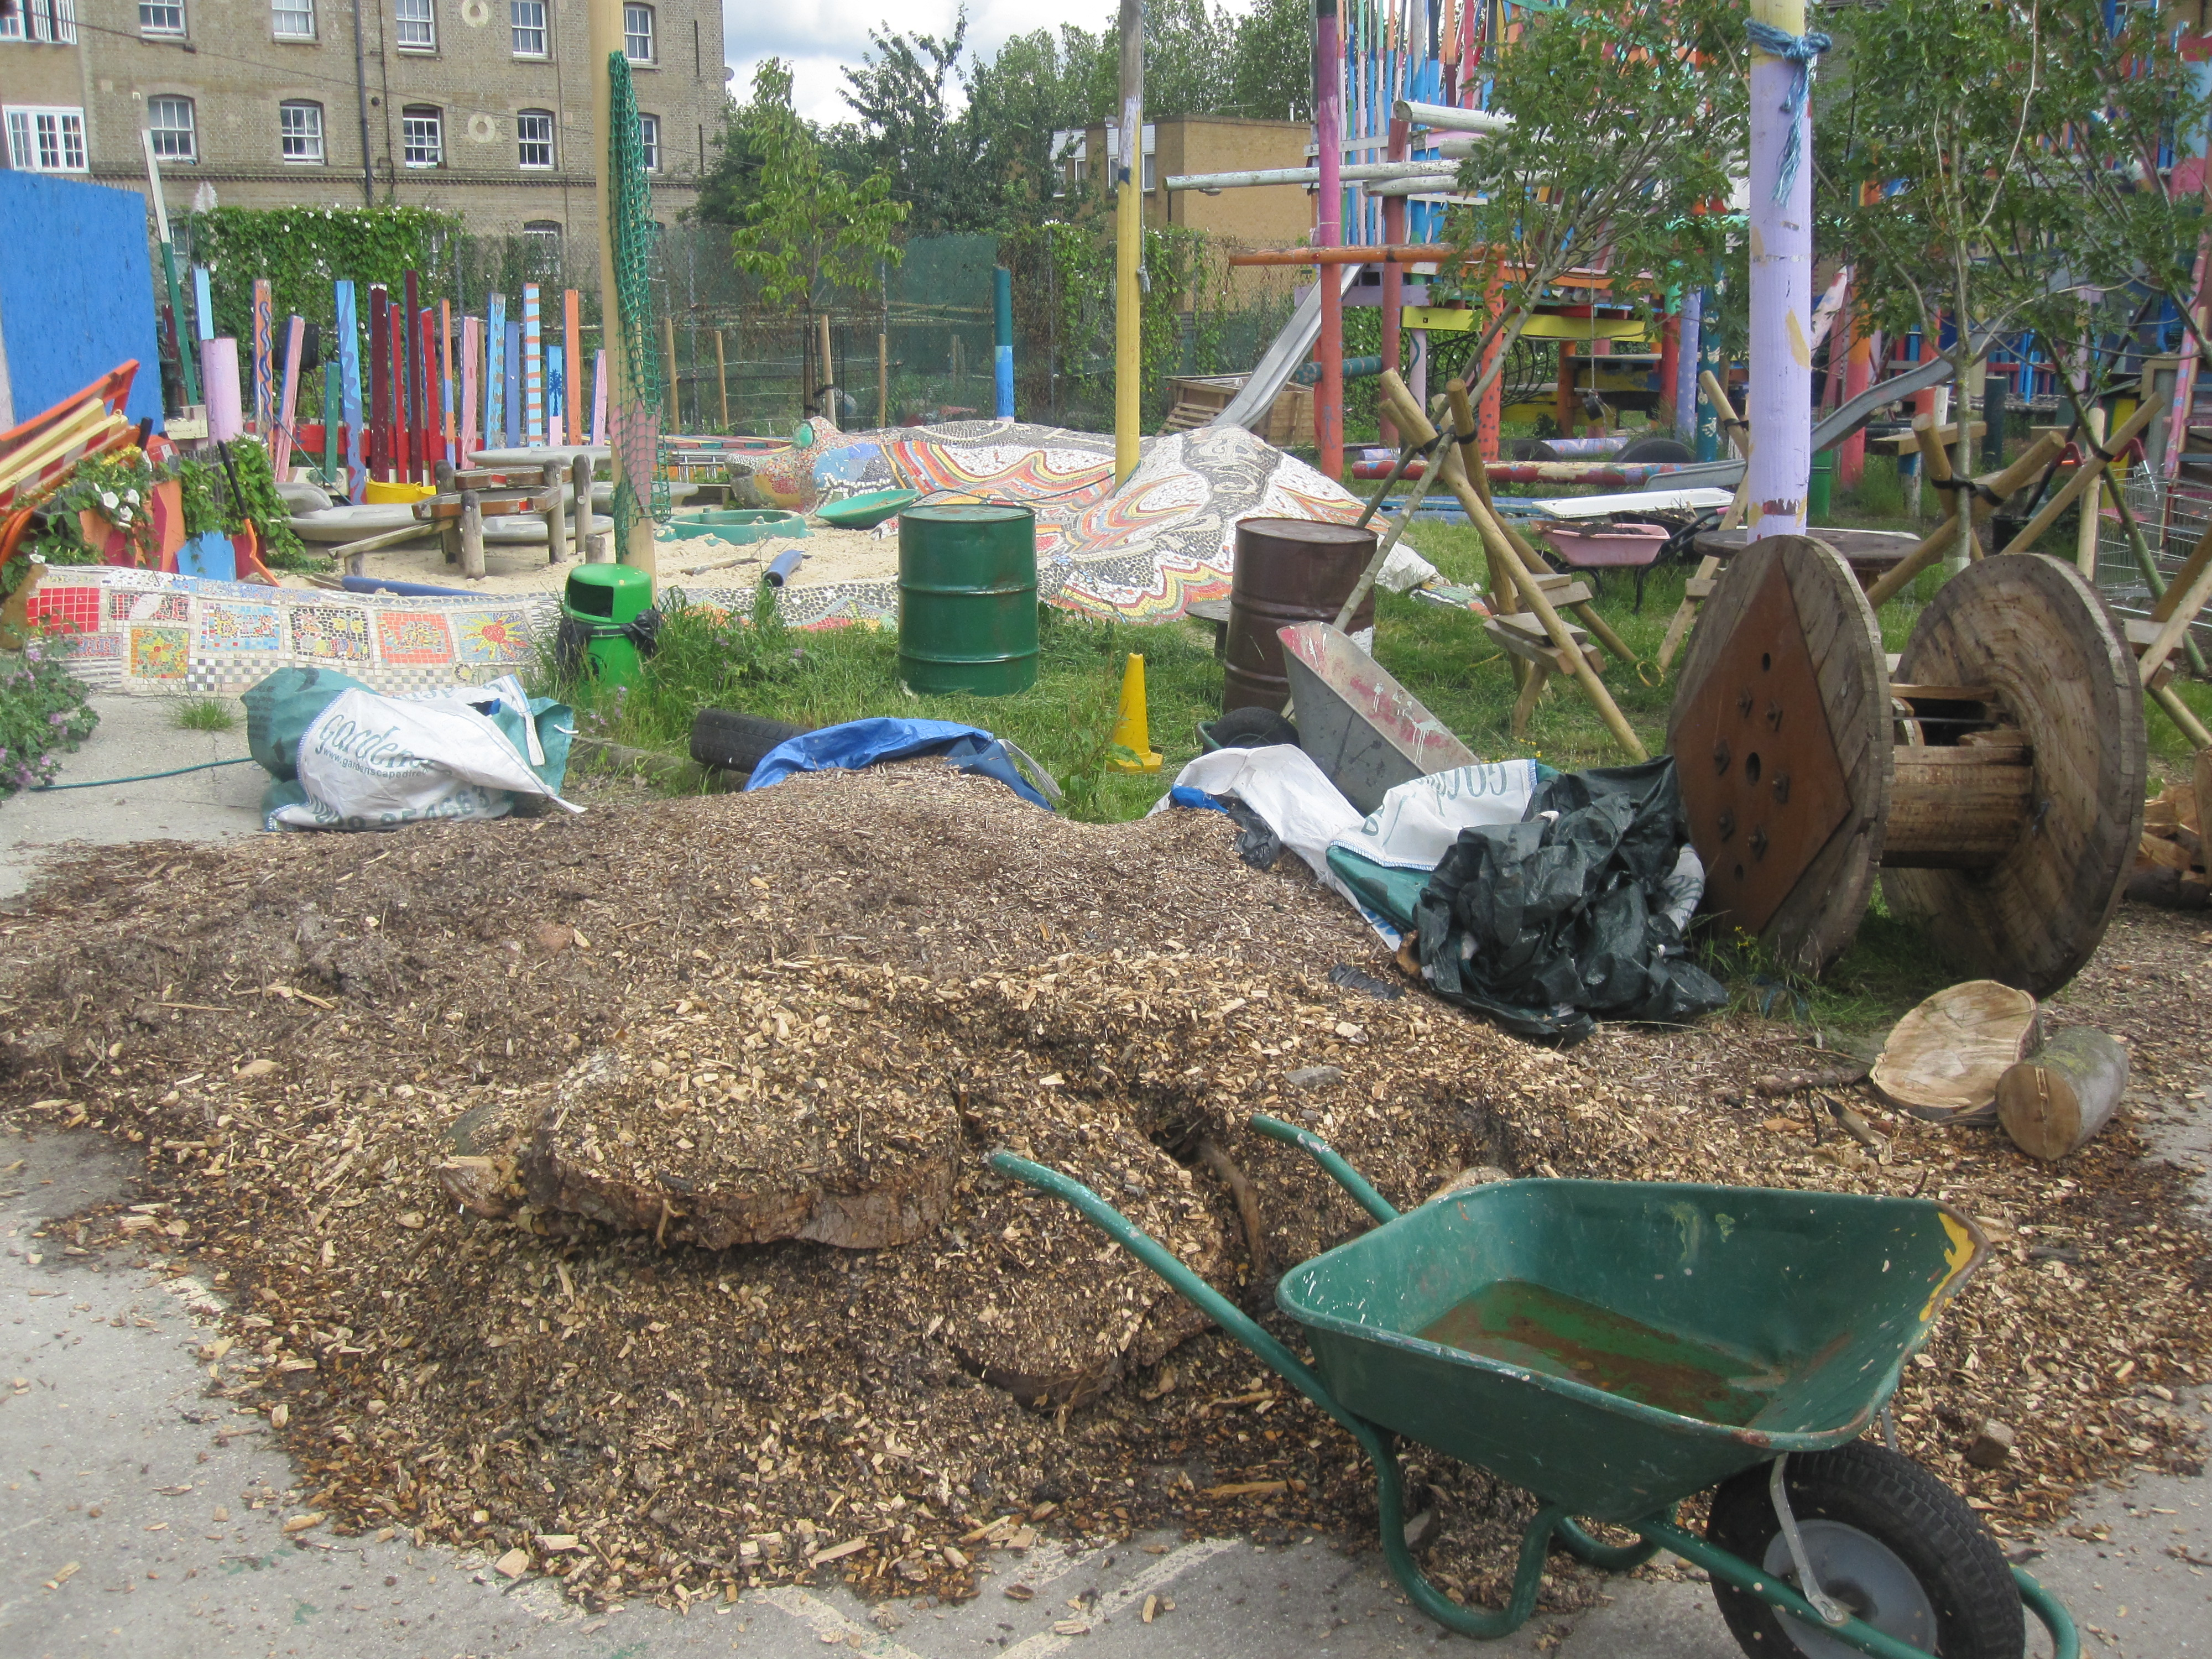 Glamis Adventure Playground in London, where kids play with hammers, wheelbarrows and other risky play inspiration. (Photo credit: Glamis Adventure Playground)